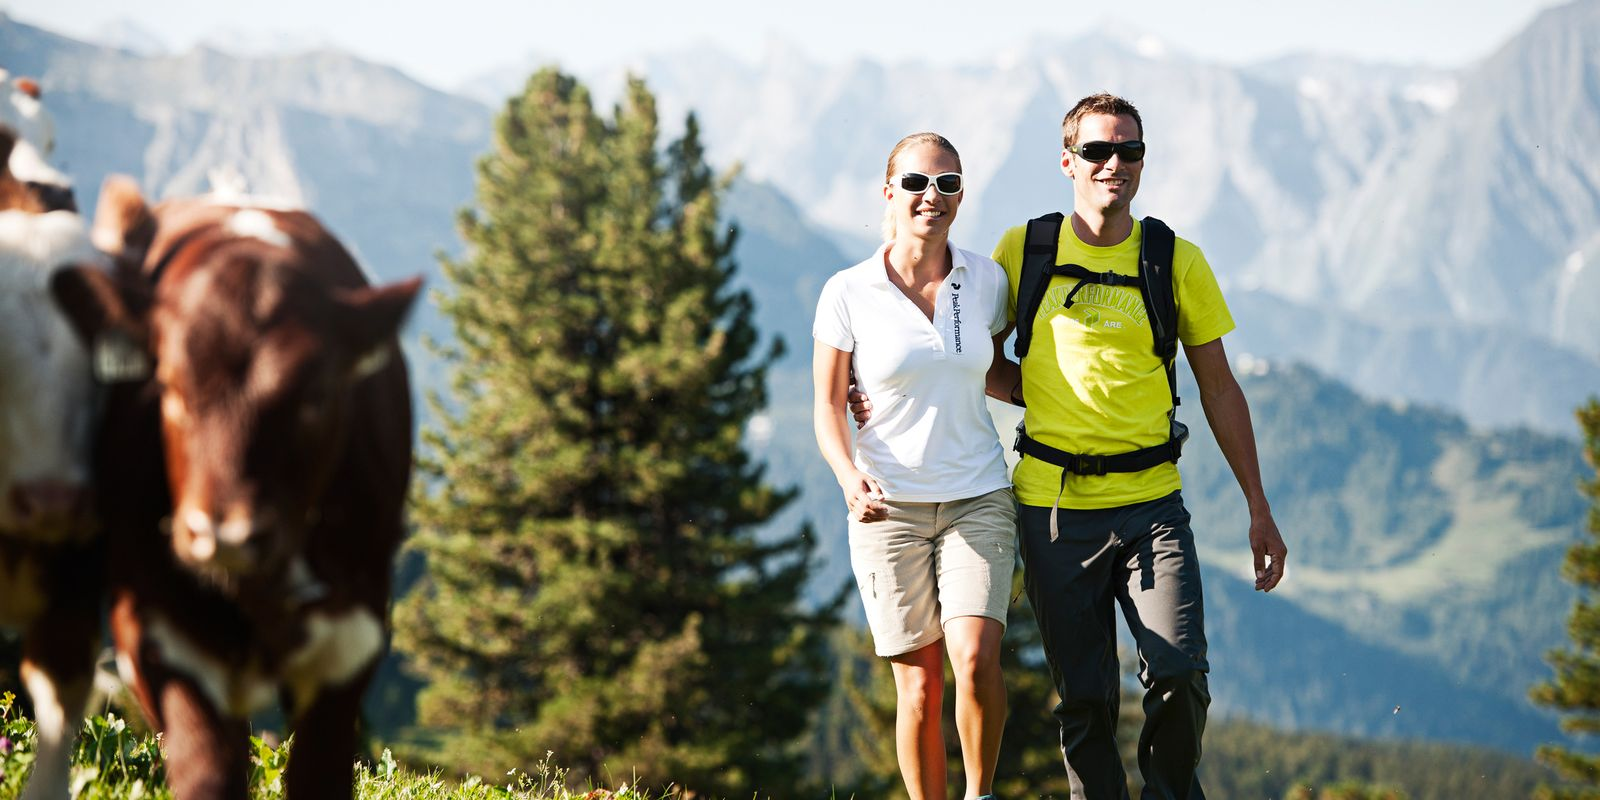 Hiking in the Zillertal mountains